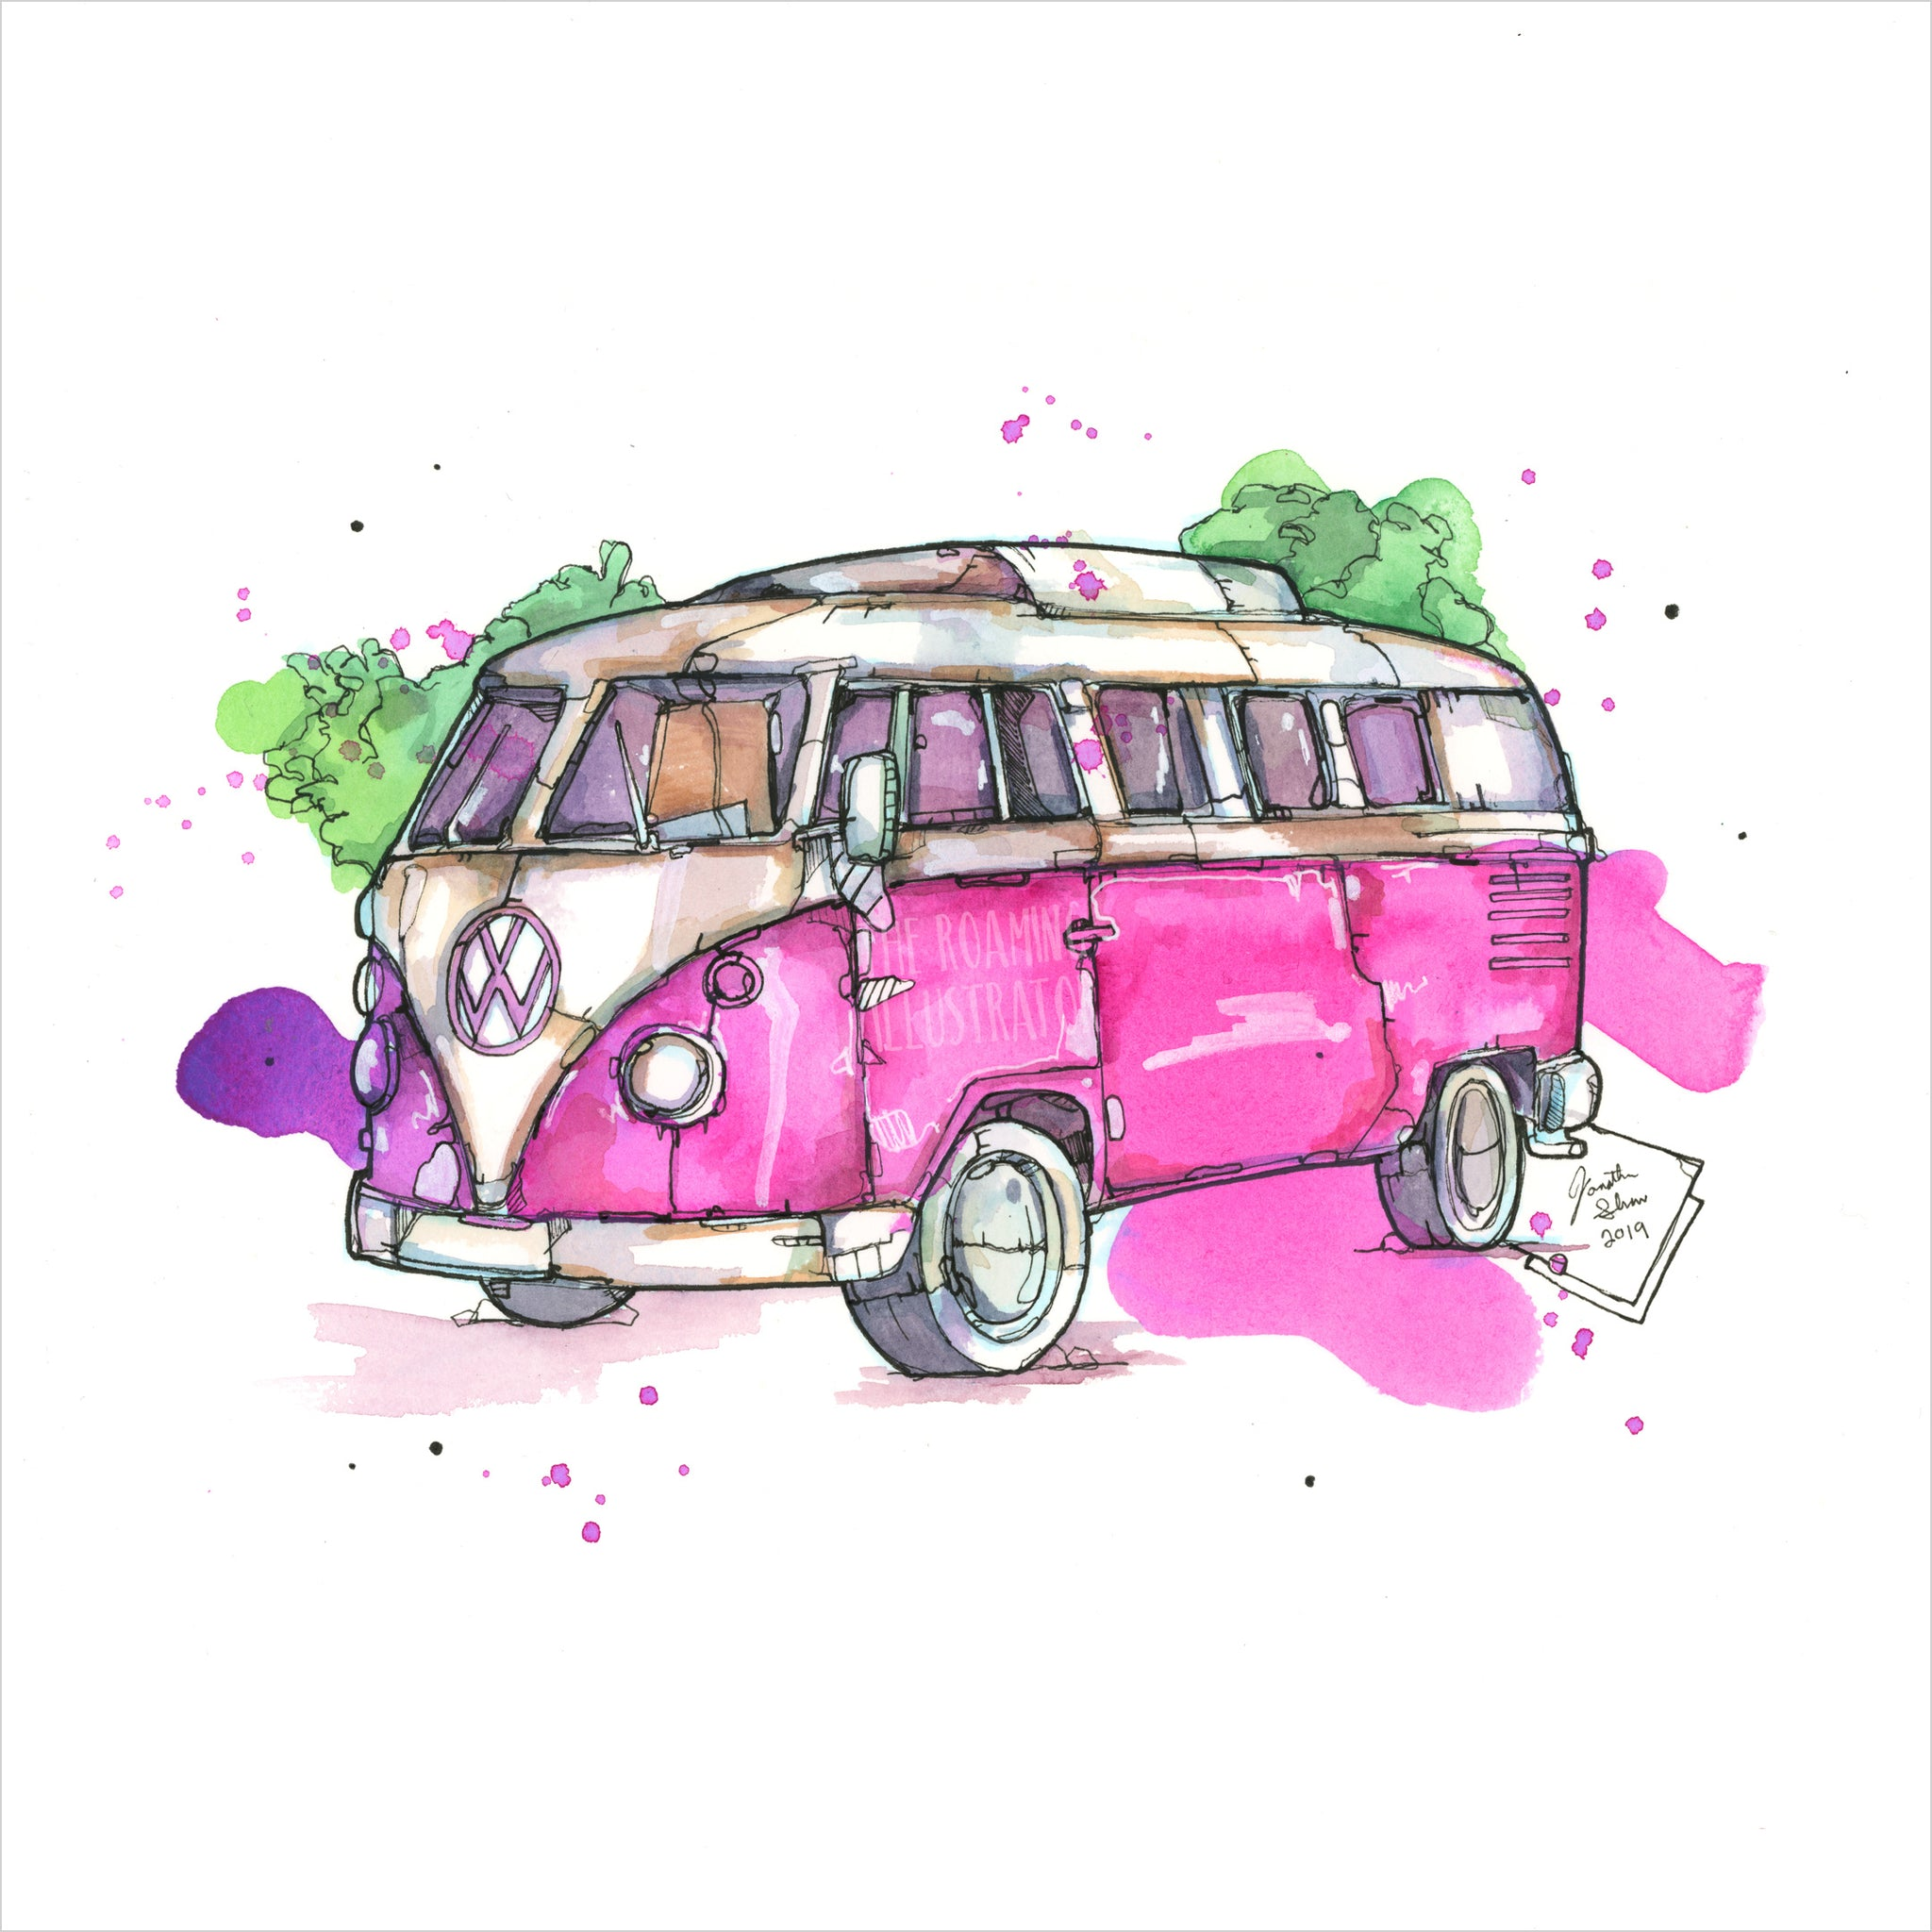 """Volkswagen Van"" - 8x10 Reproduction print"